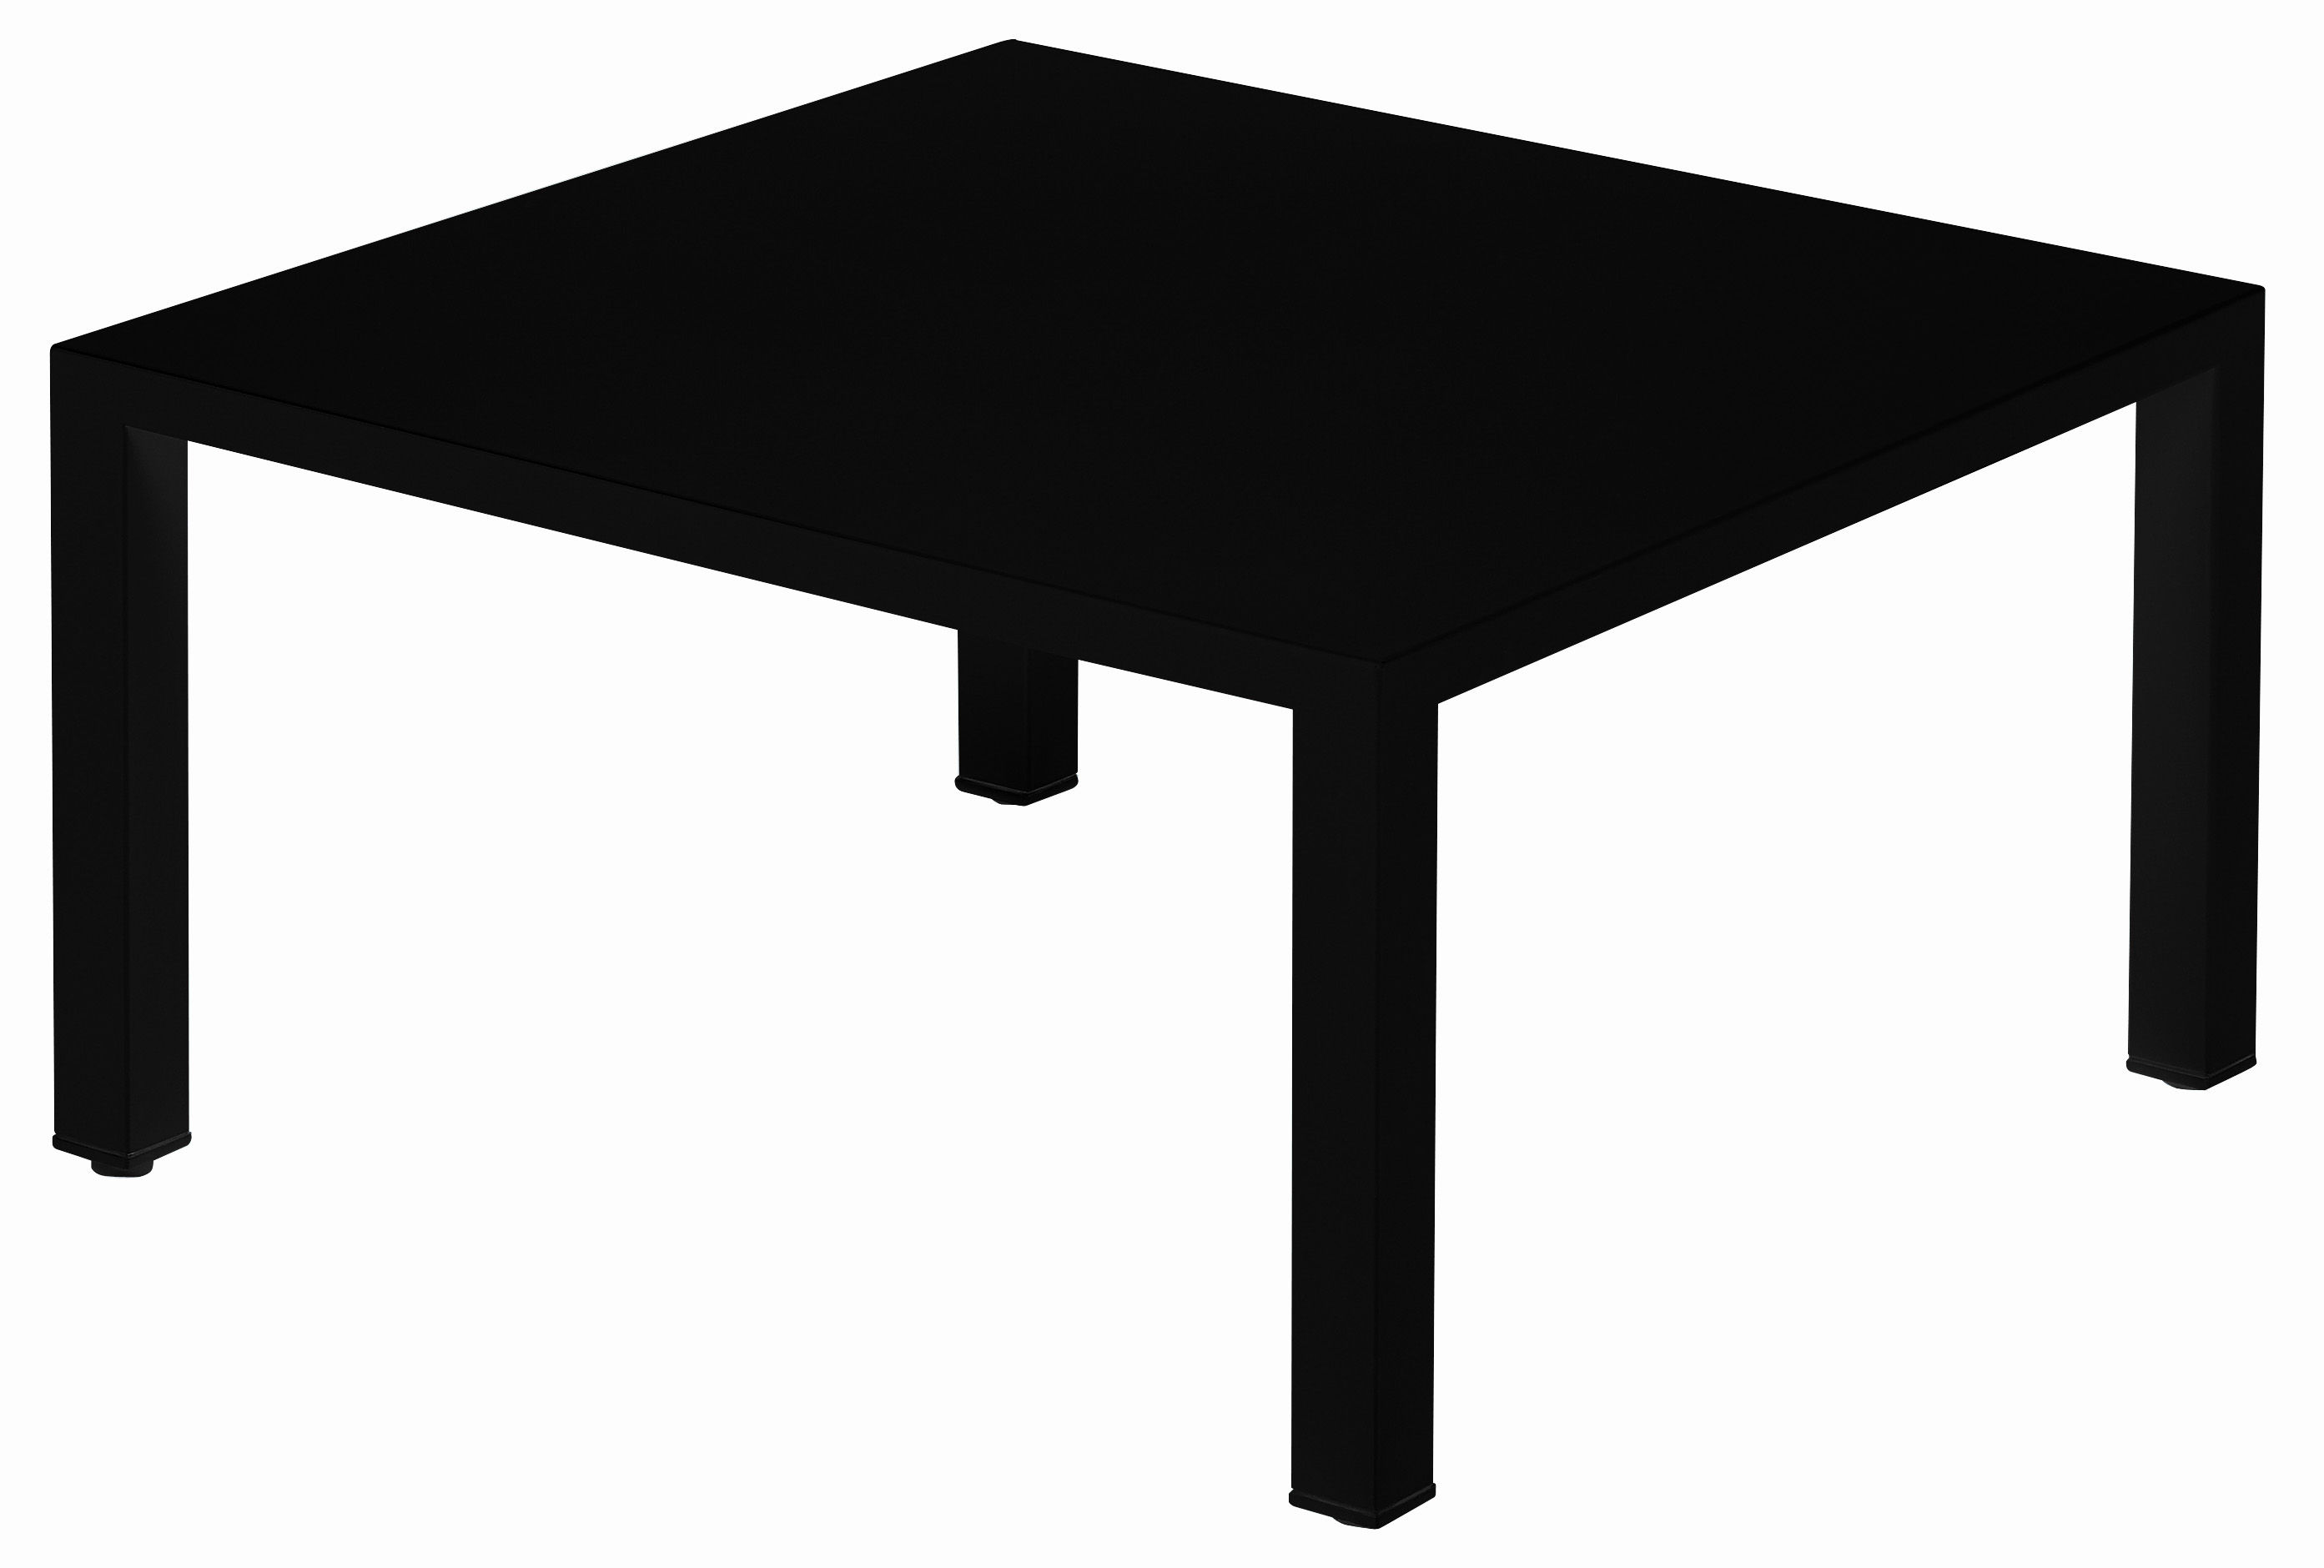 Table basse round m tal 80 x 80 cm noir emu for Table 80 x 80